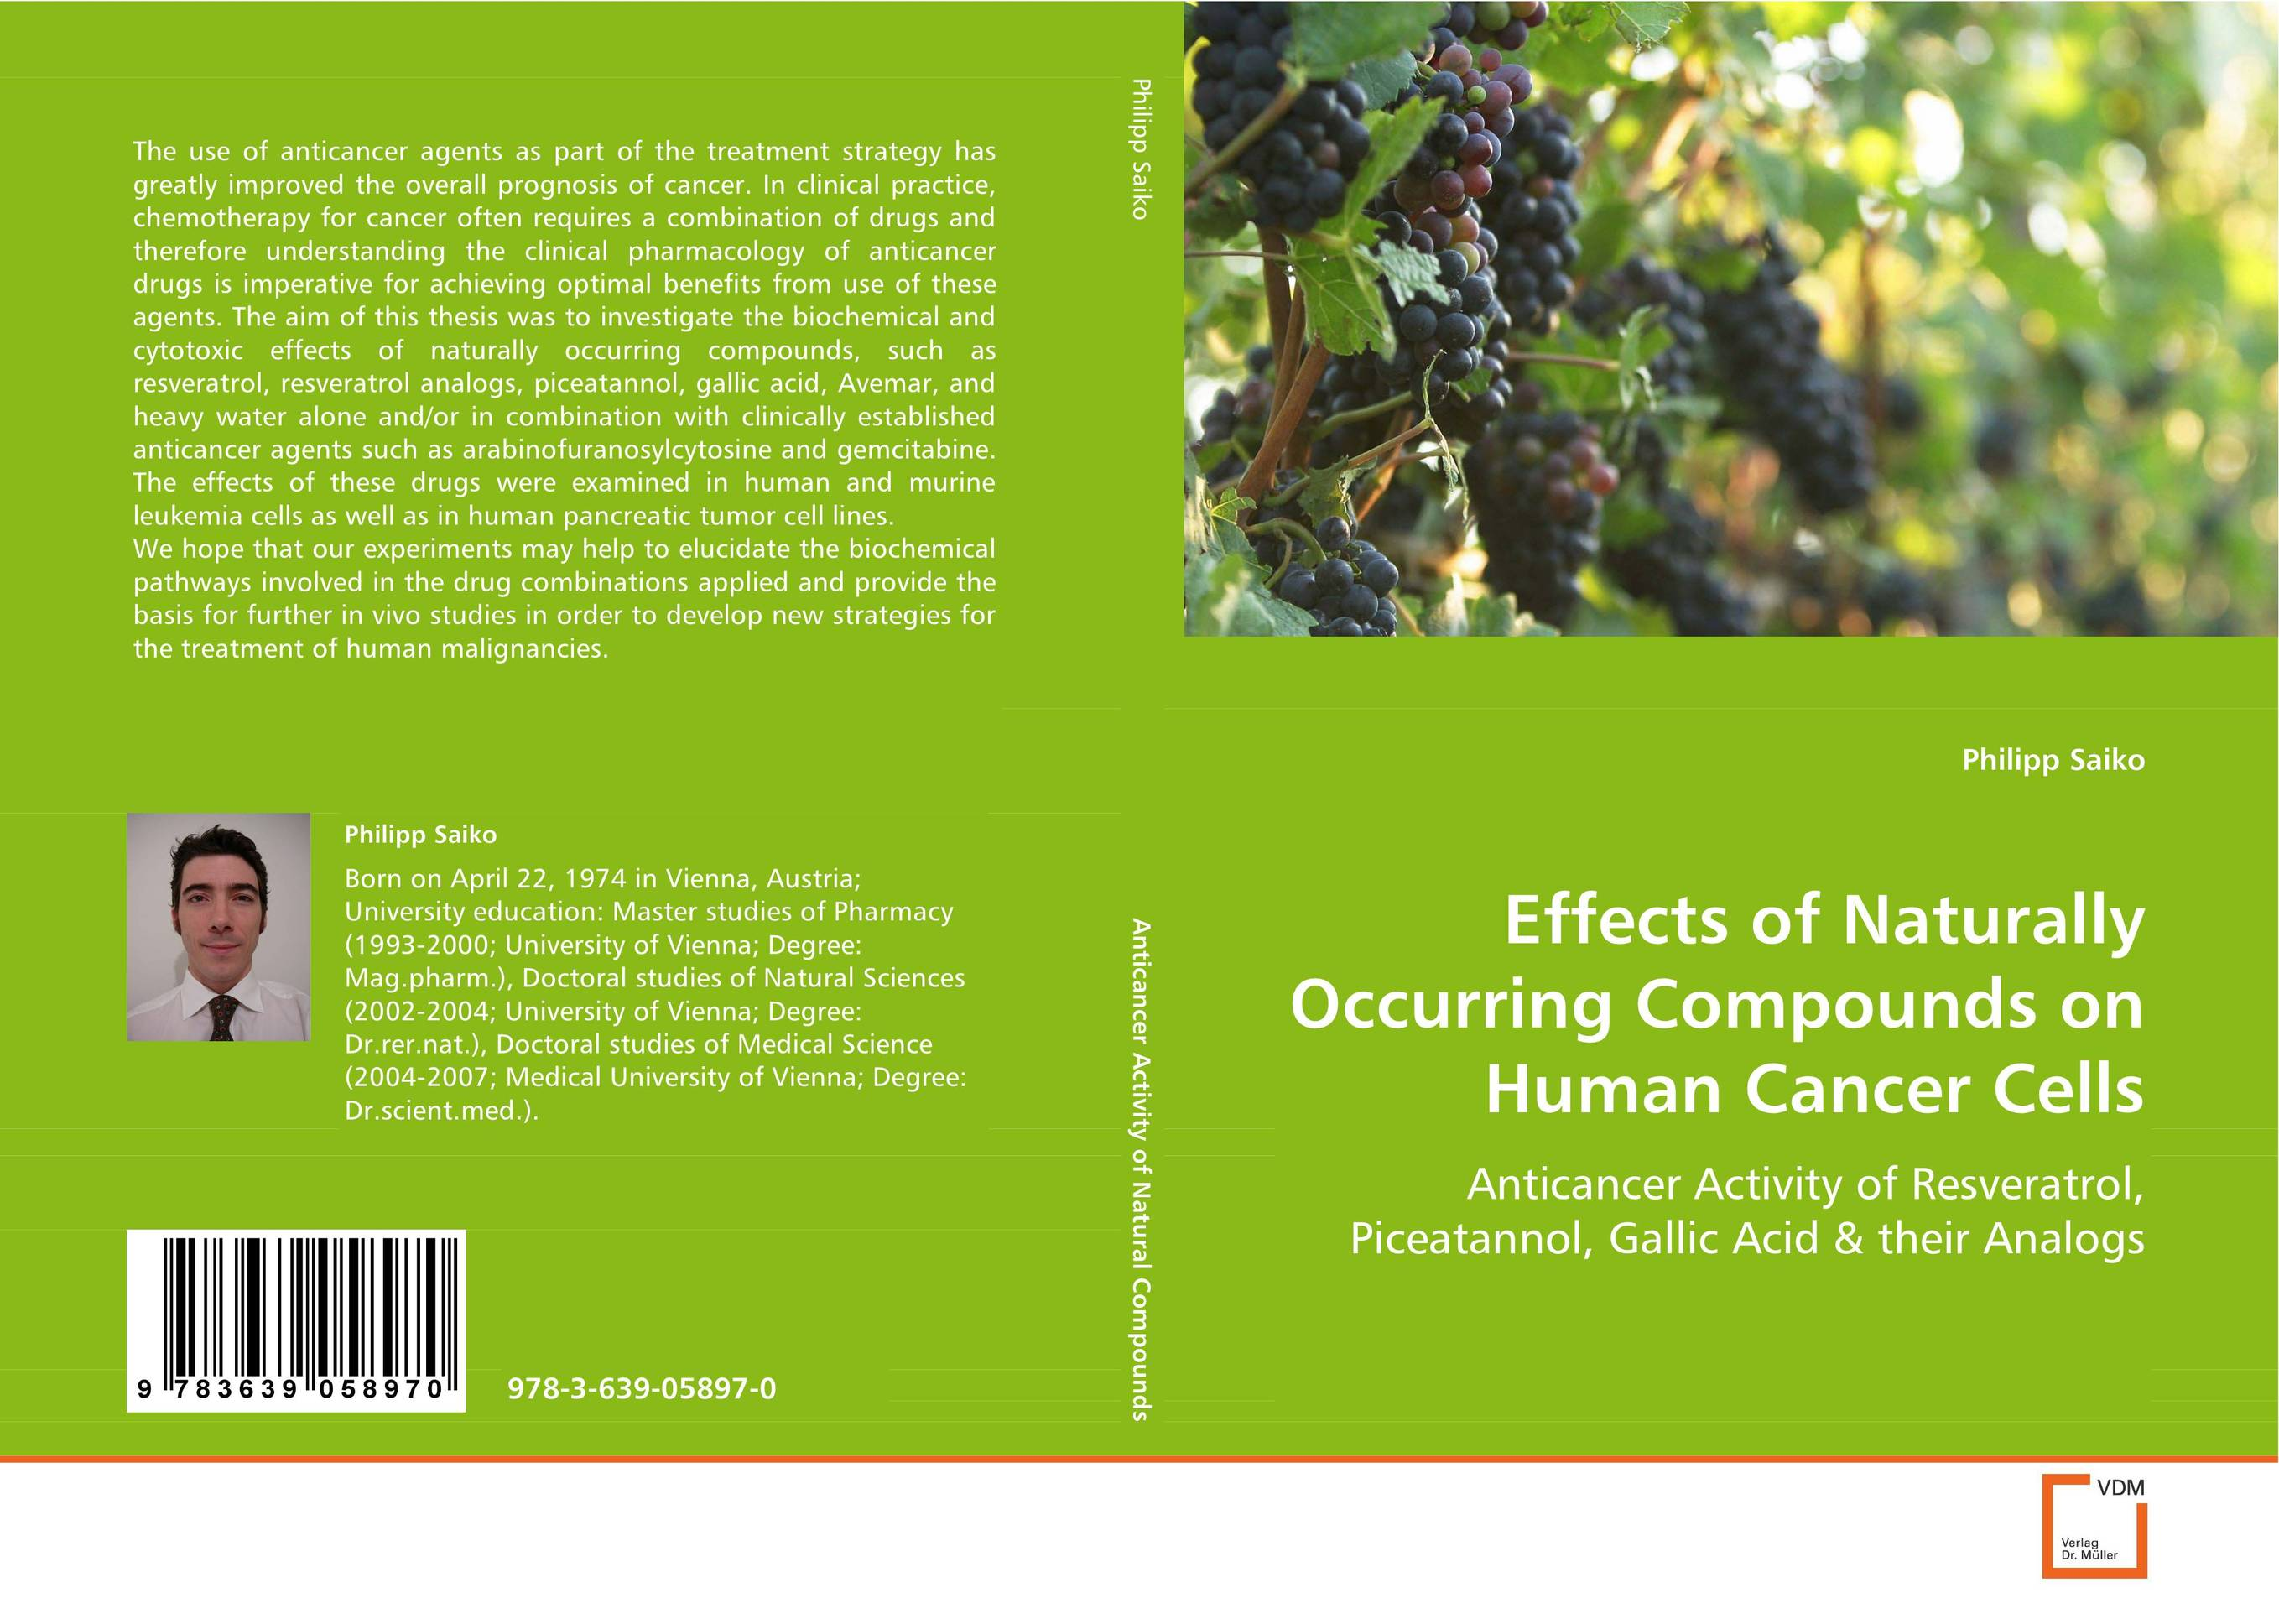 Effects of Naturally Occurring Compounds on HumanCancer Cells